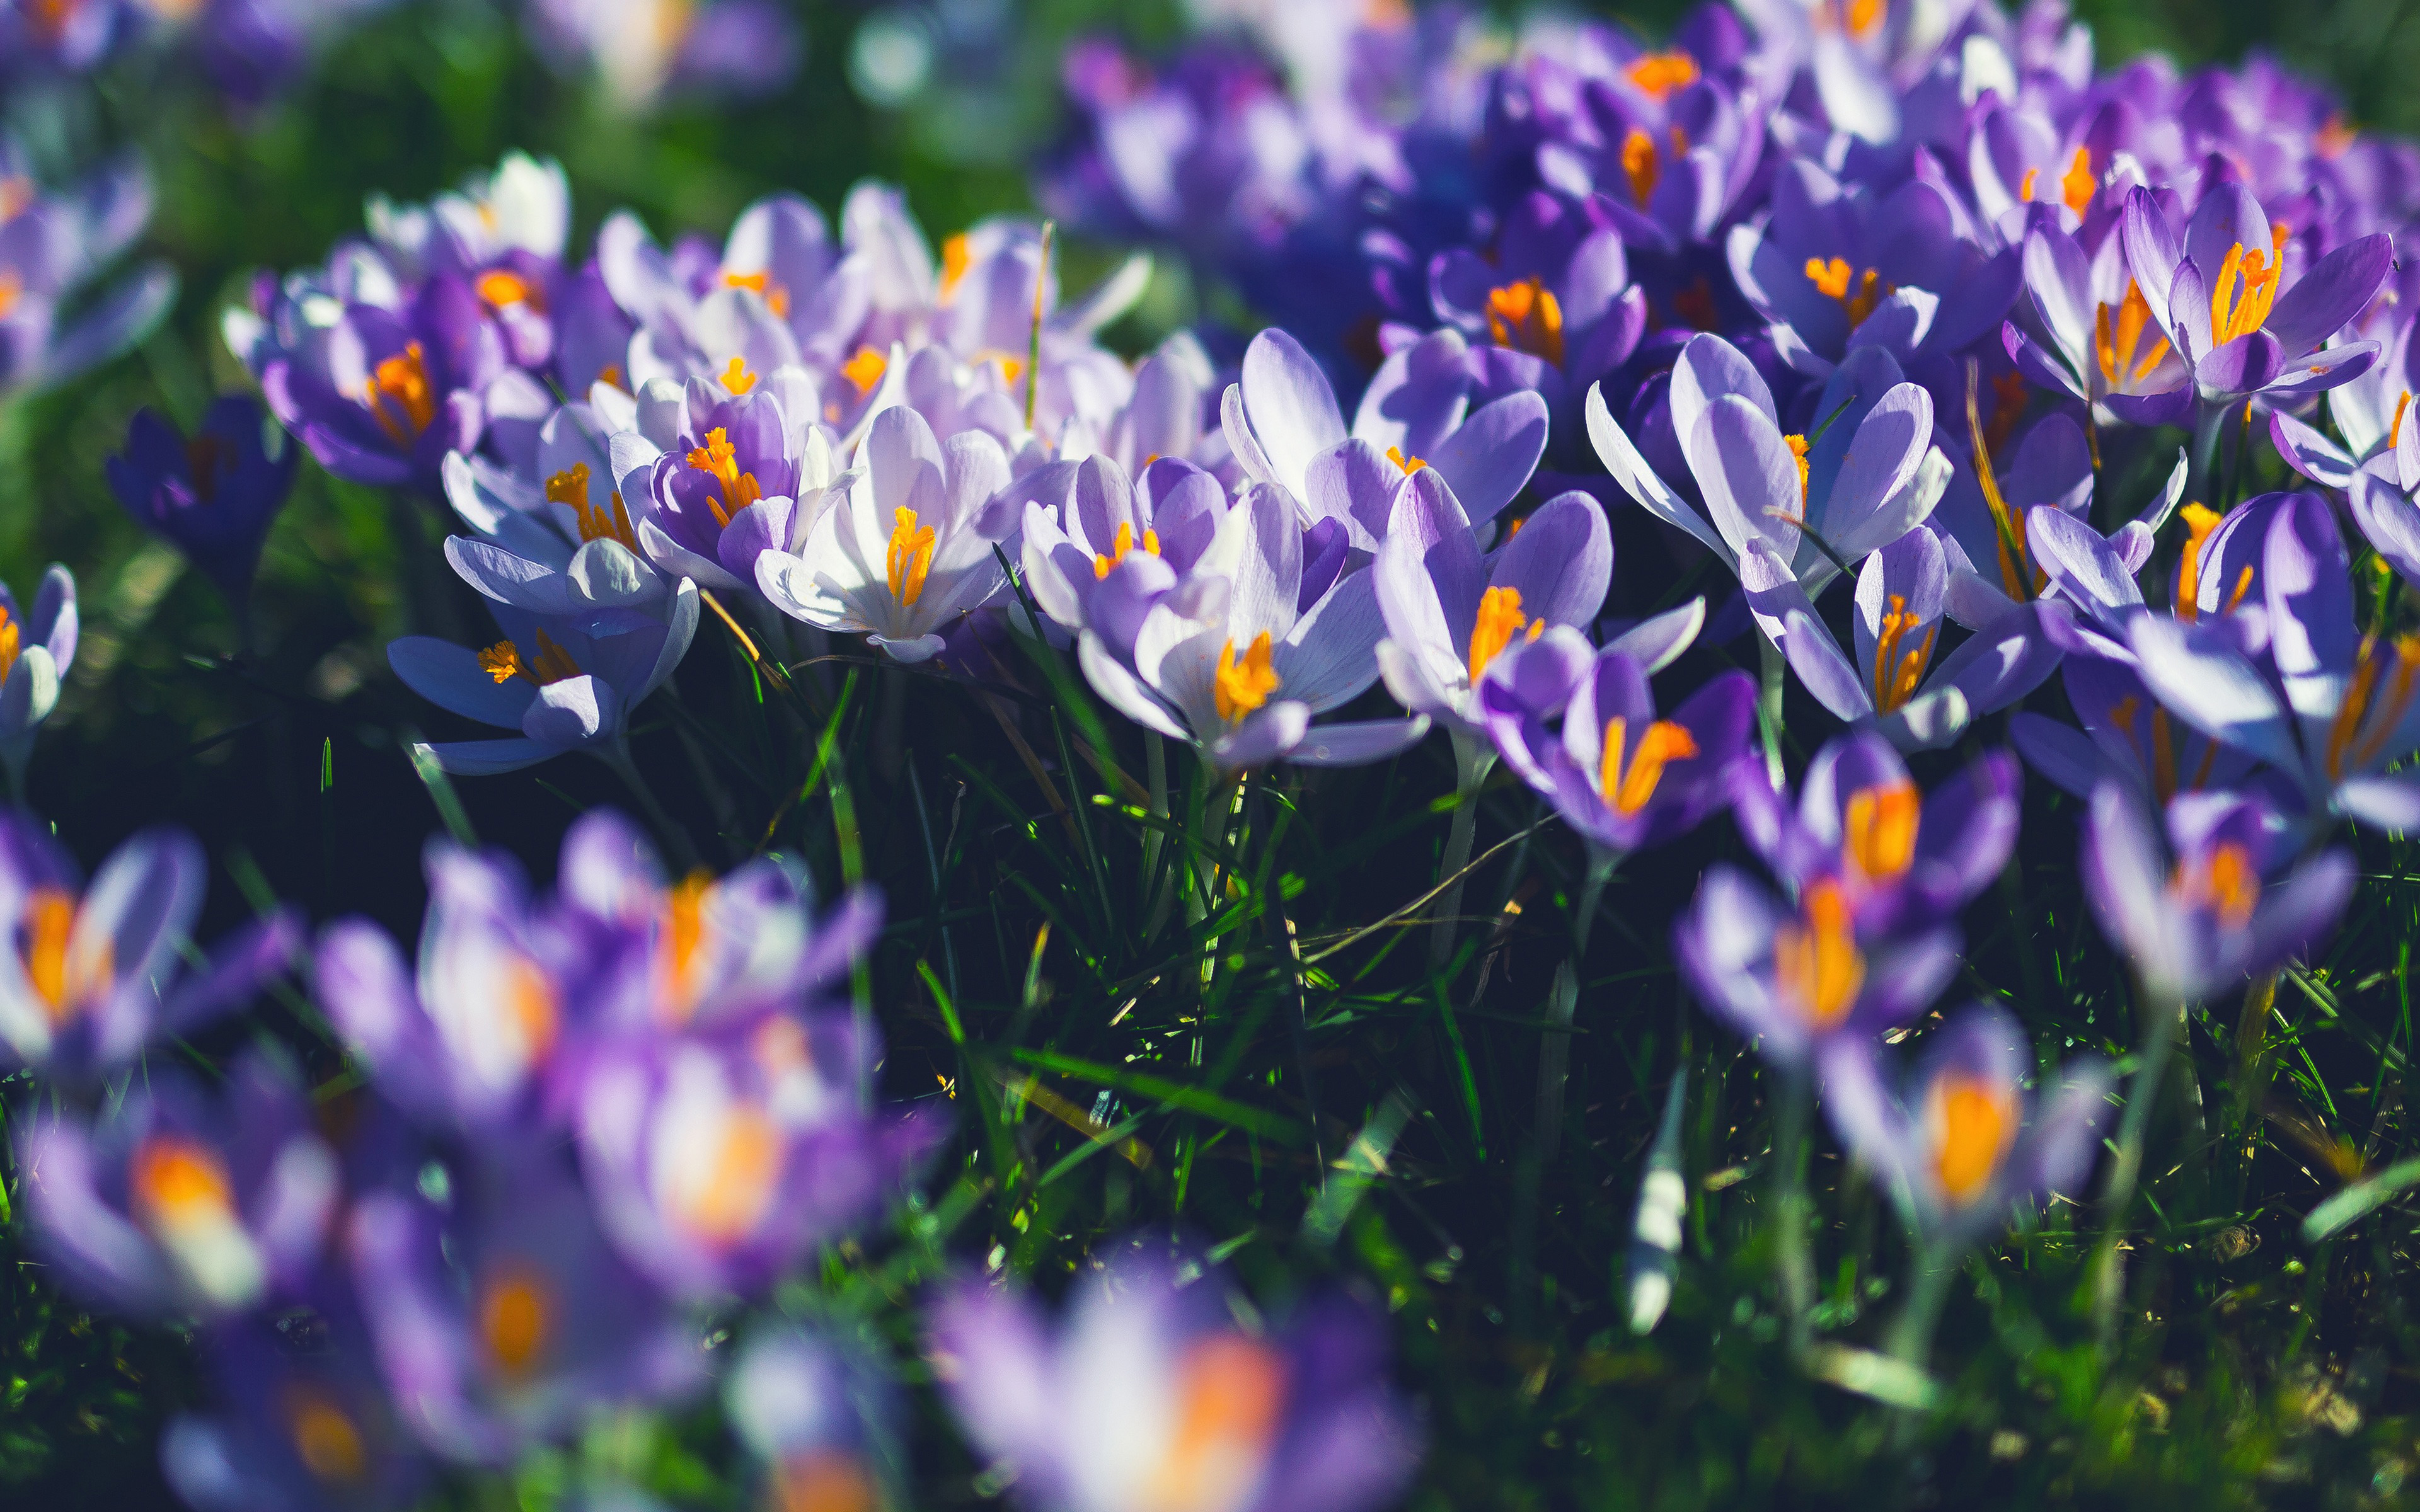 nw04-flower-purple-spring-nature-wallpaper